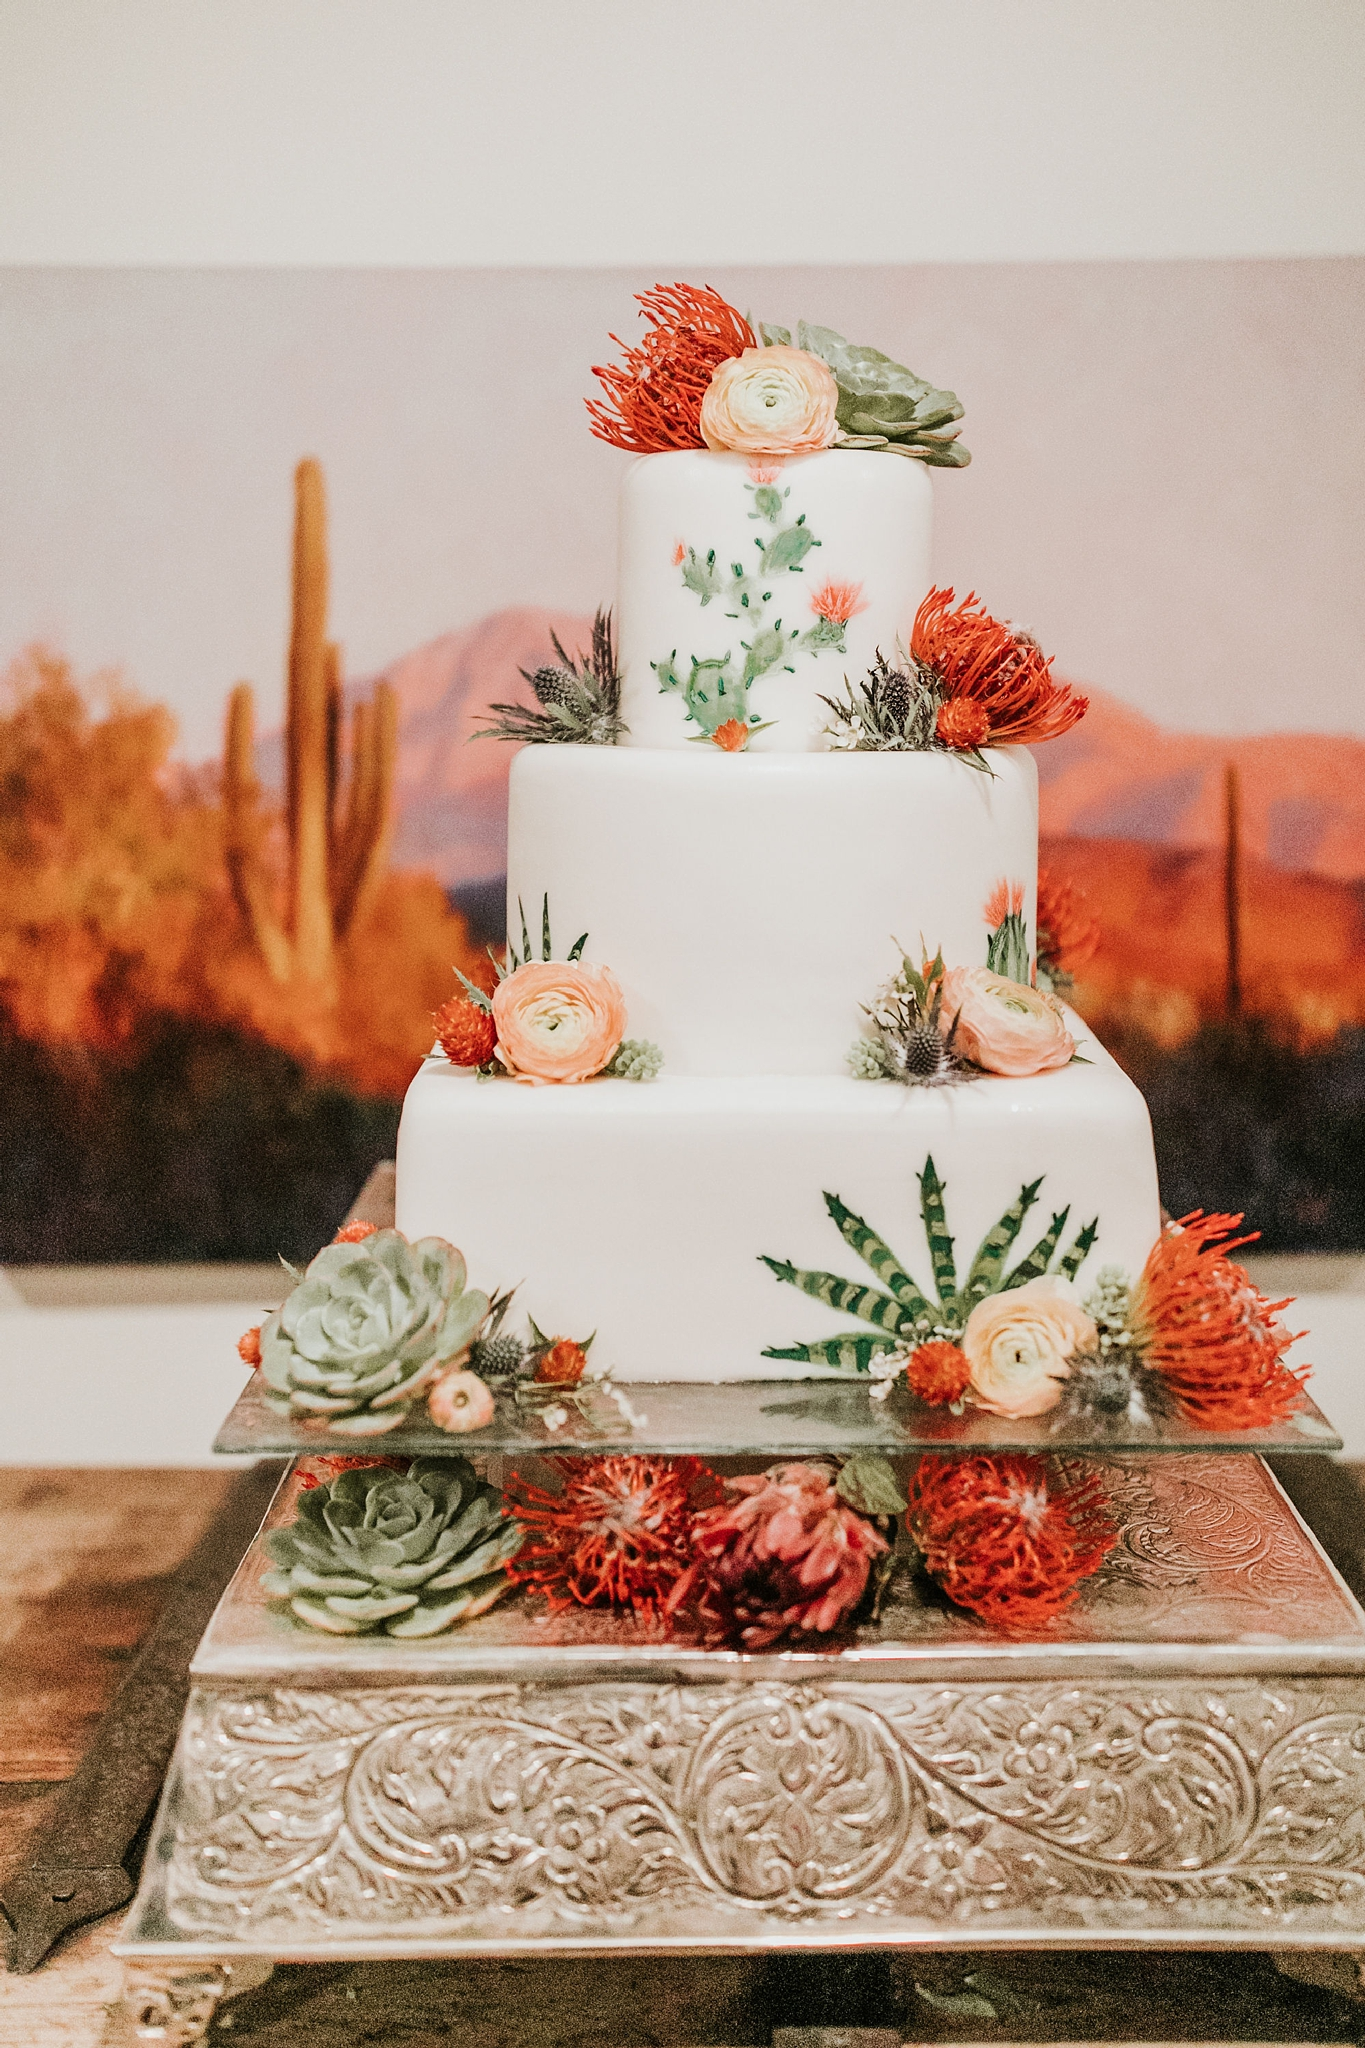 Alicia+lucia+photography+-+albuquerque+wedding+photographer+-+santa+fe+wedding+photography+-+new+mexico+wedding+photographer+-+new+mexico+wedding+-+santa+fe+wedding+-+albuquerque+wedding+-+southwest+wedding+traditions_0019.jpg